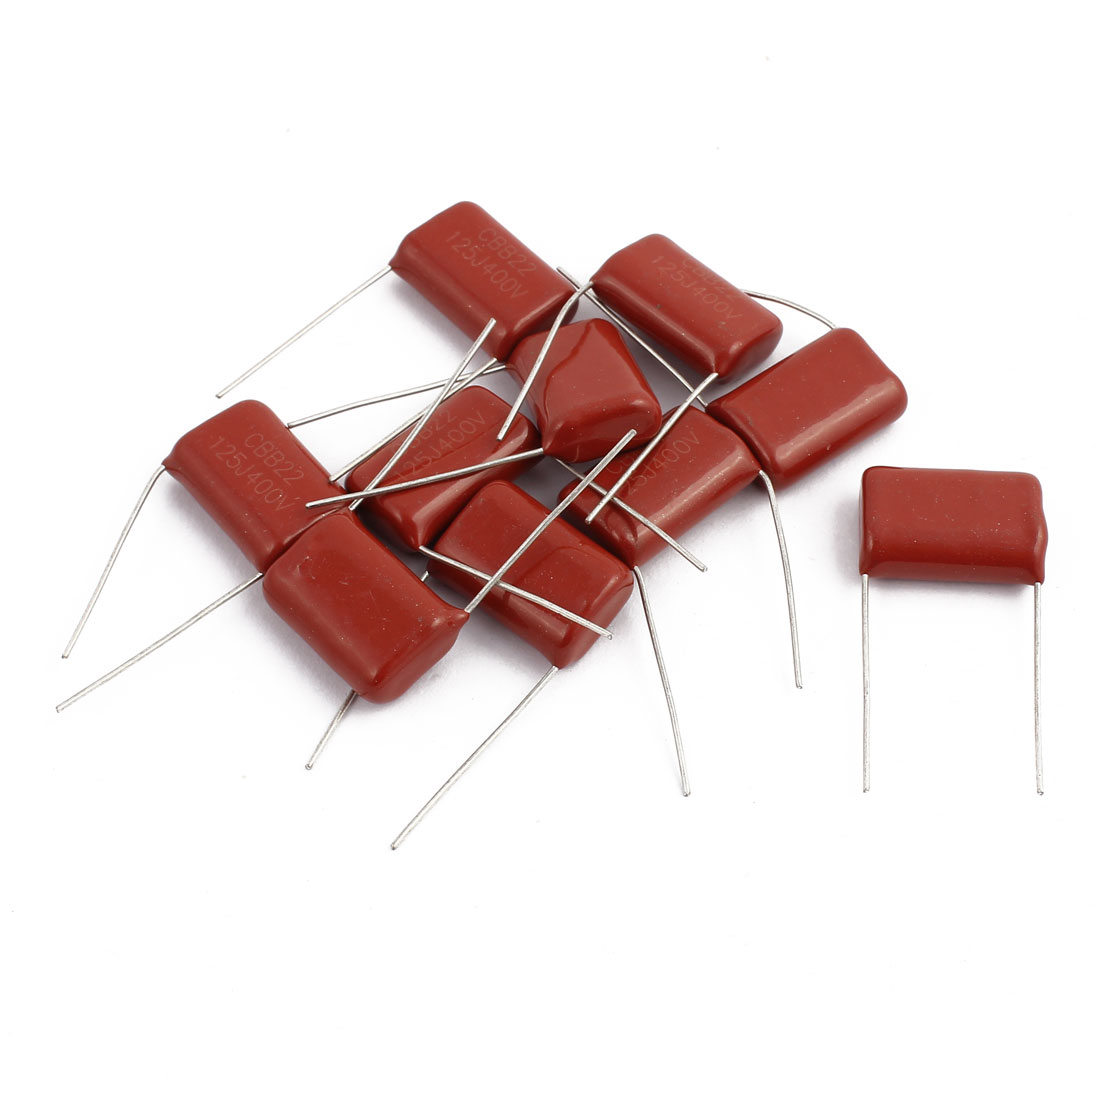 CBB22 DC 400V Metallized Polypropylene Film Capacitor 10 Pcs